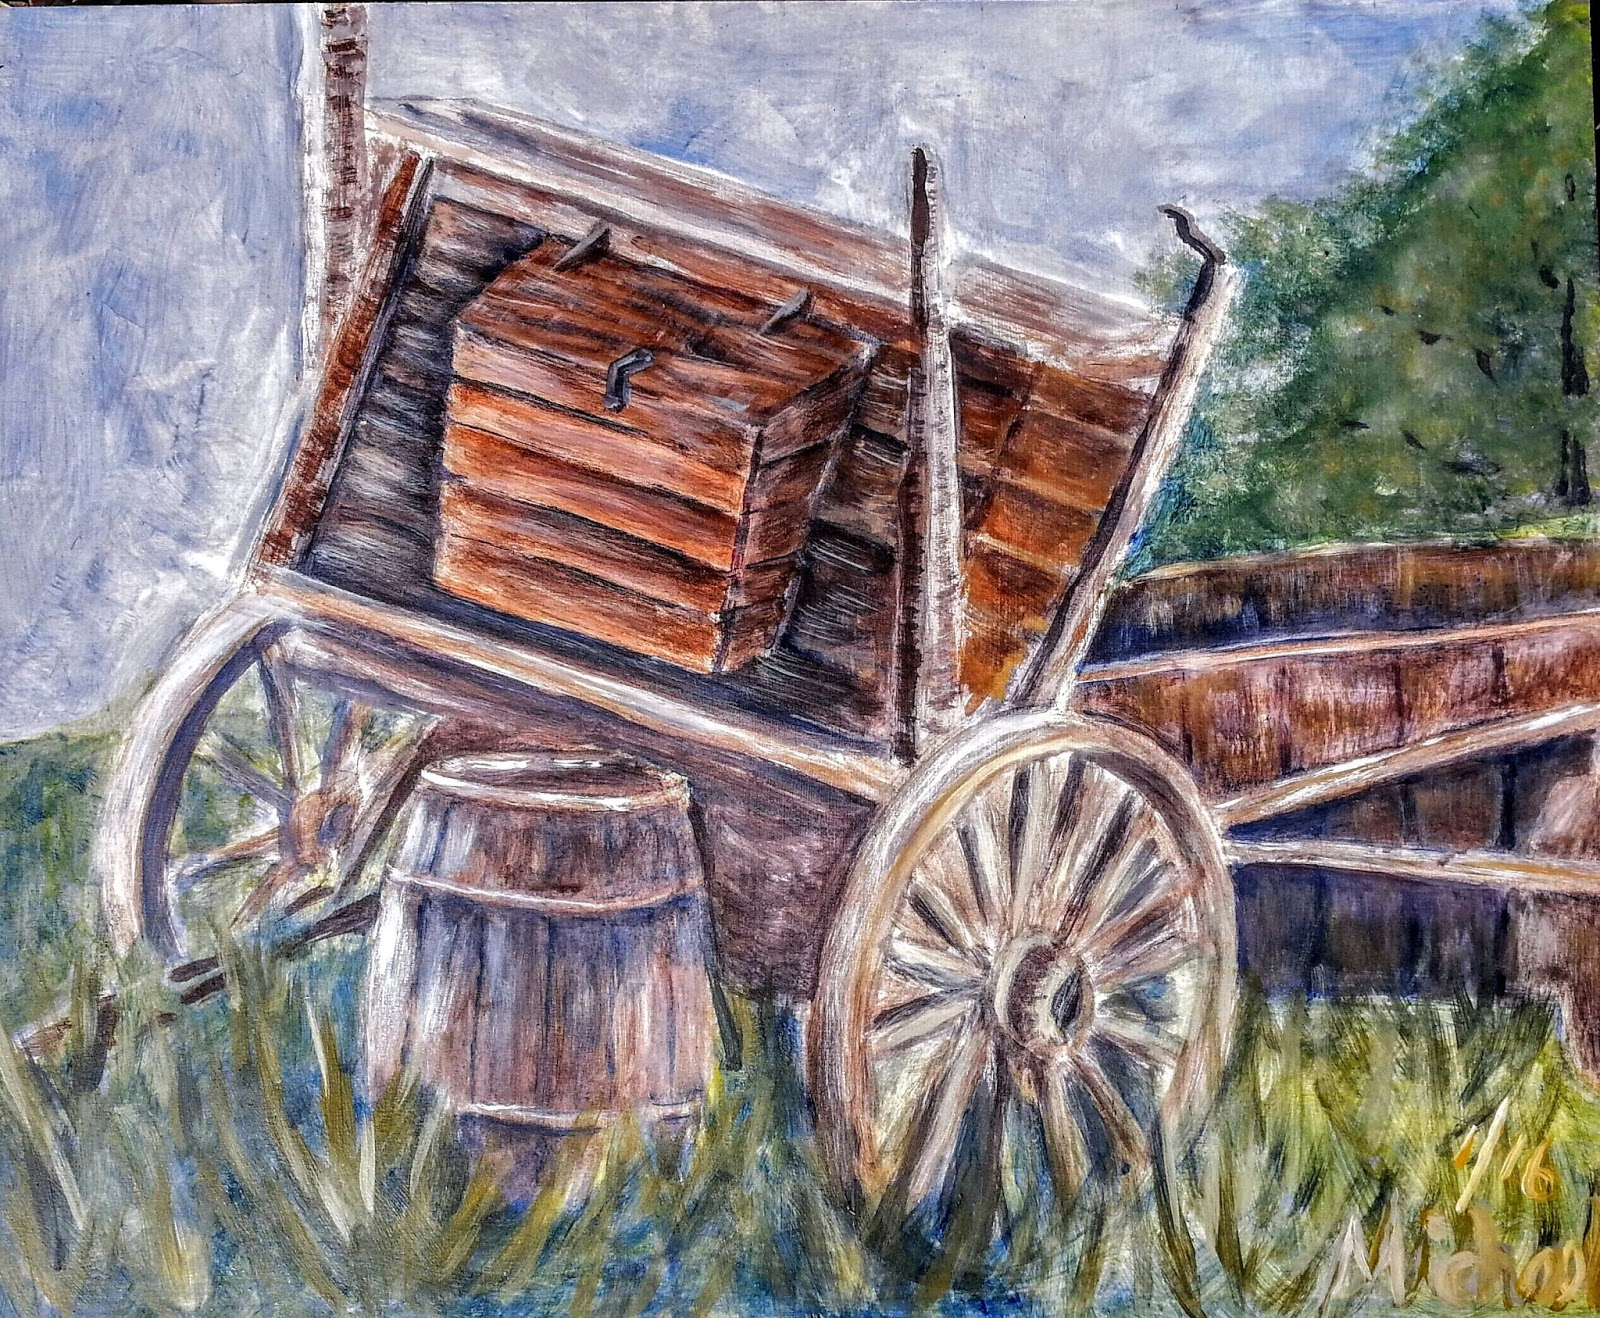 Michael arnold art studies in style for Things to do with old wagon wheels